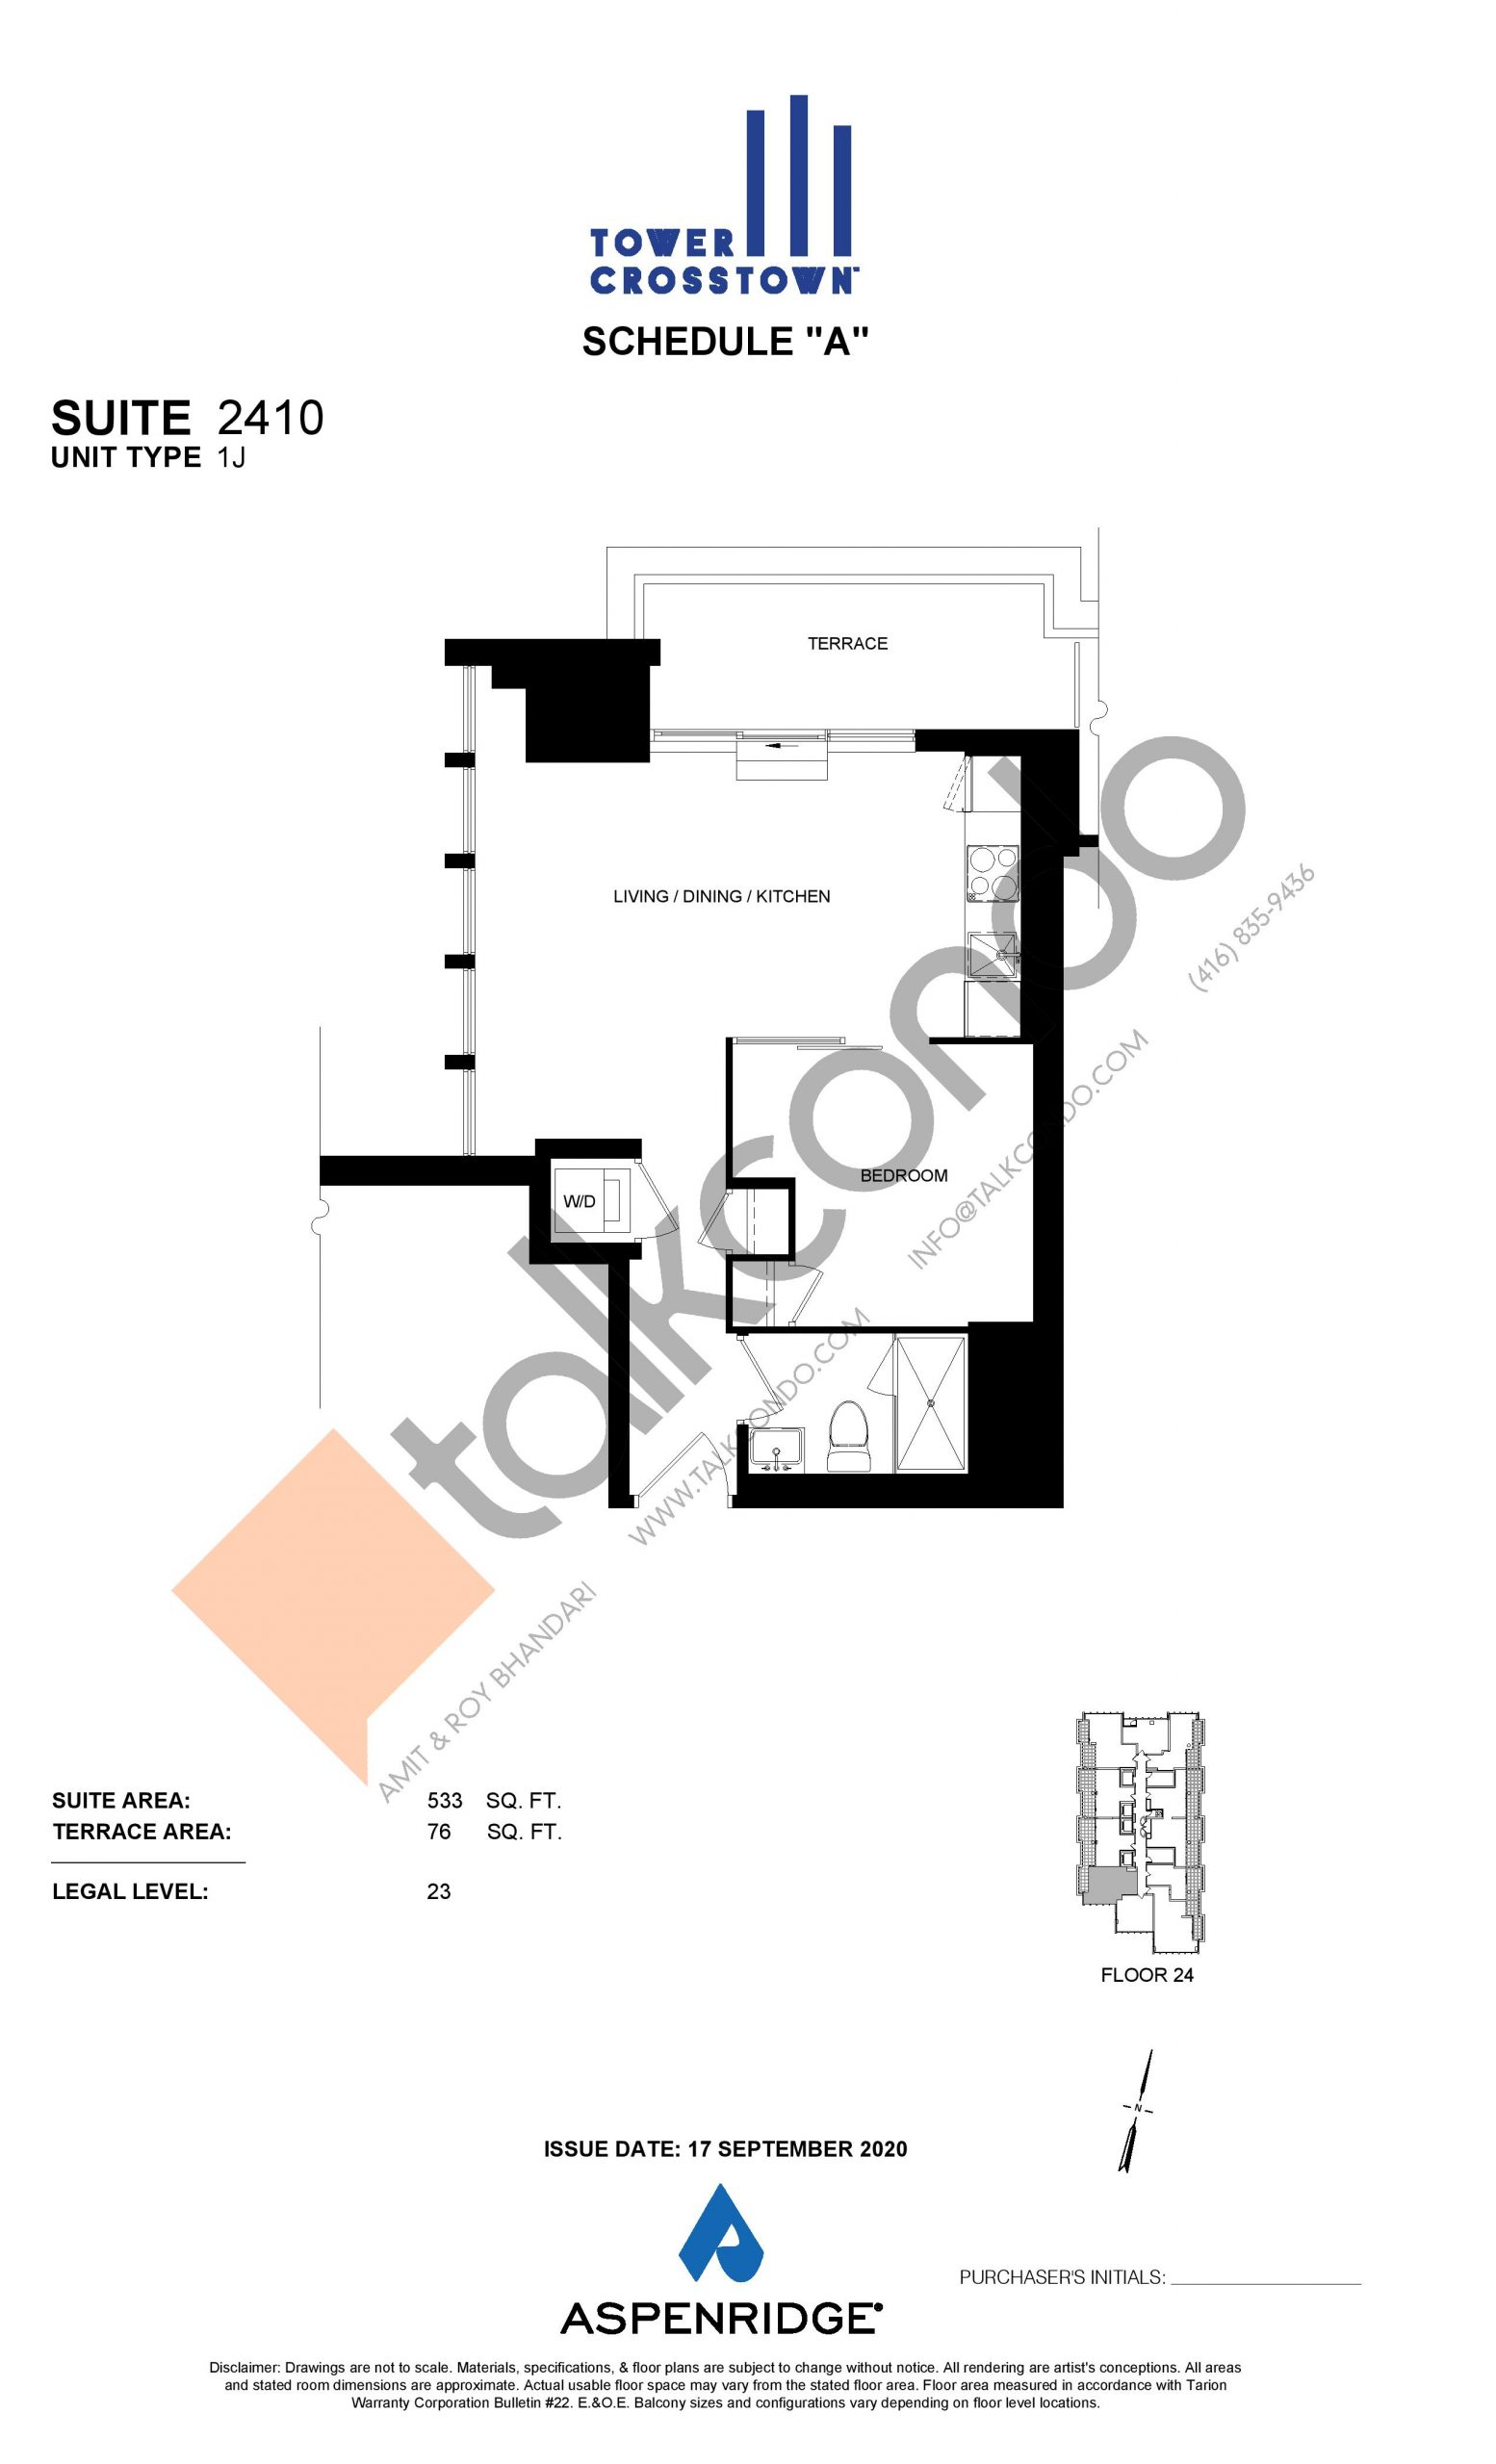 Suite 2410 - 1J Floor Plan at Crosstown Tower 3 Condos - 533 sq.ft